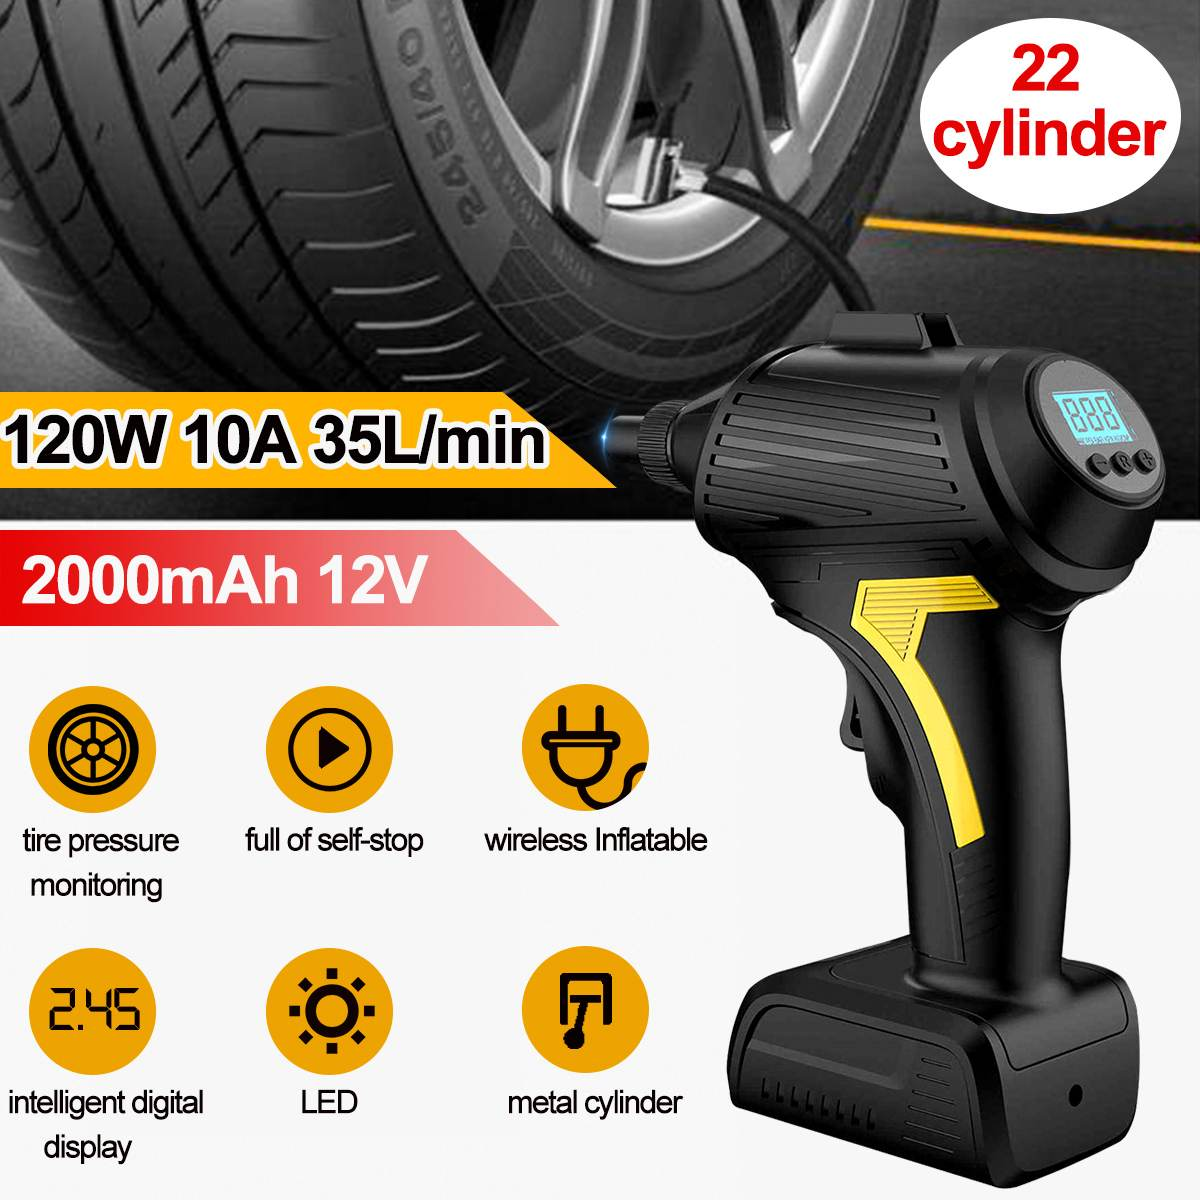 12V 2000mAh 35L/min Tire Inflator Cordless Air Compressor 150PSI Hand Held Air Pump Rechargeable 120W Electric Power LCD Digital